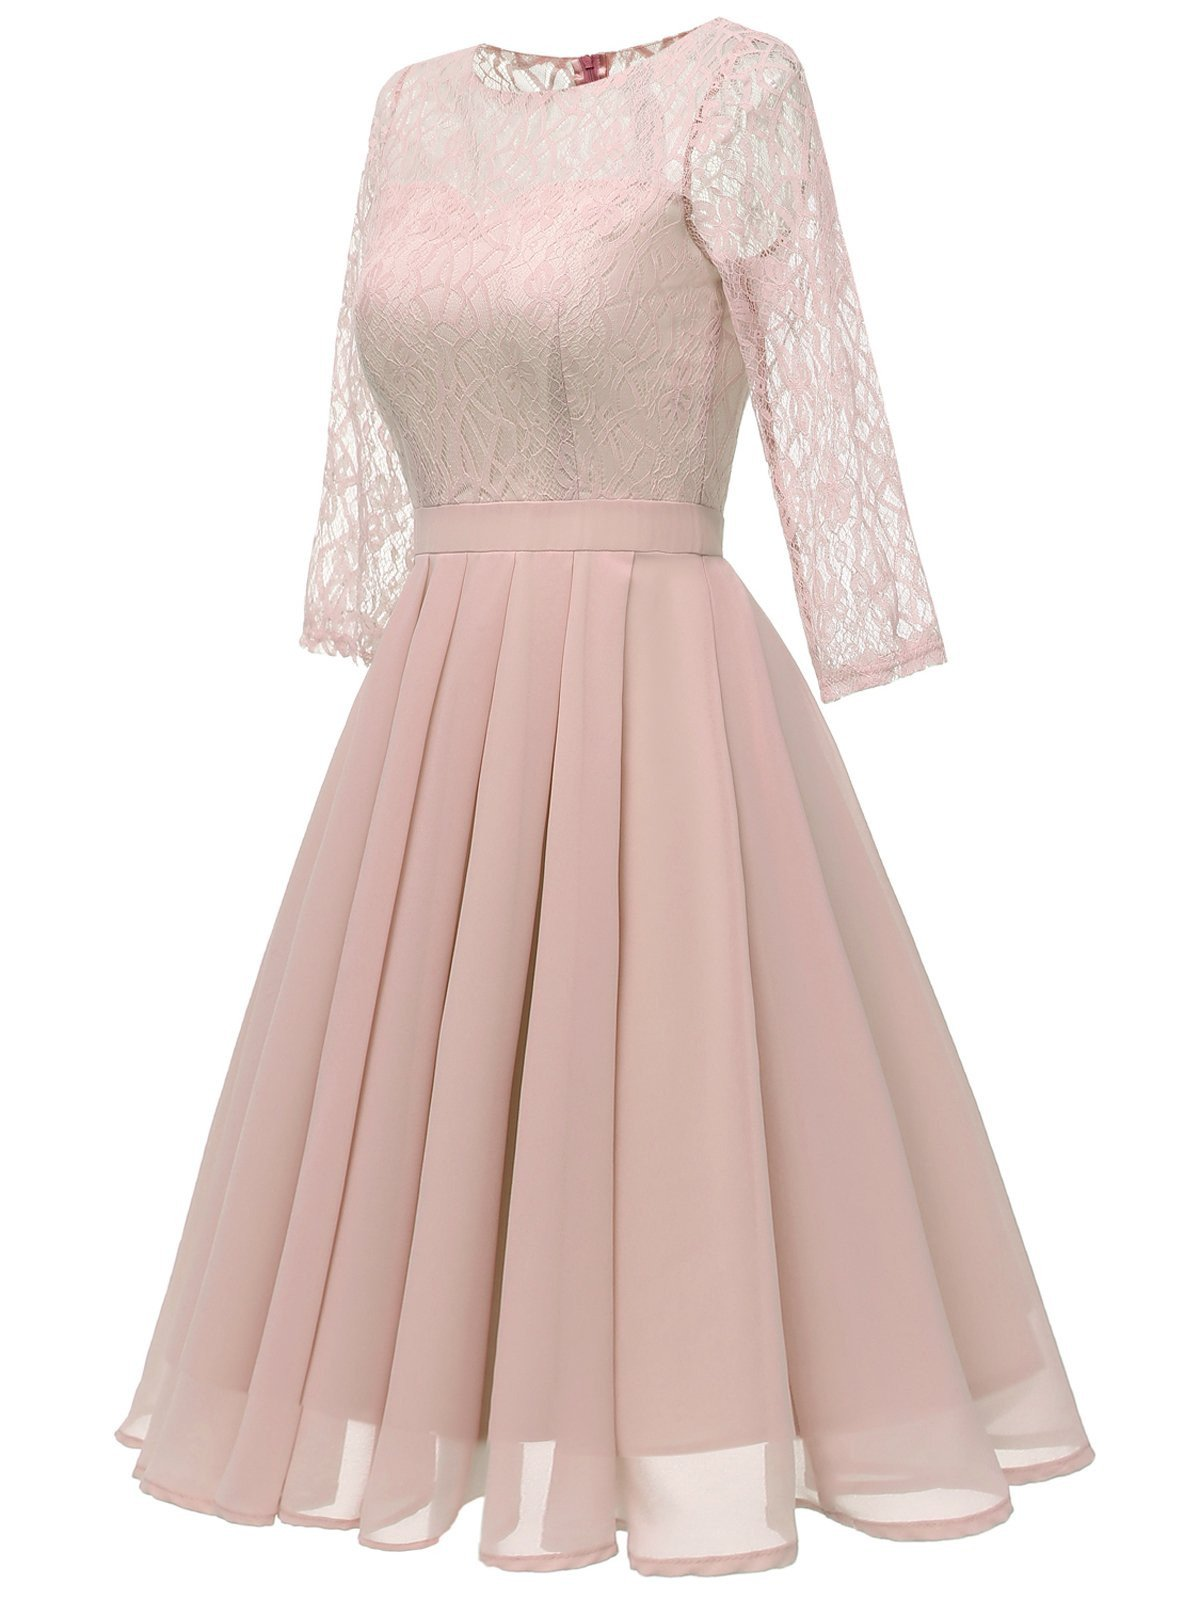 Pink 1950s Lace 3/4 Sleeve Swing Dress